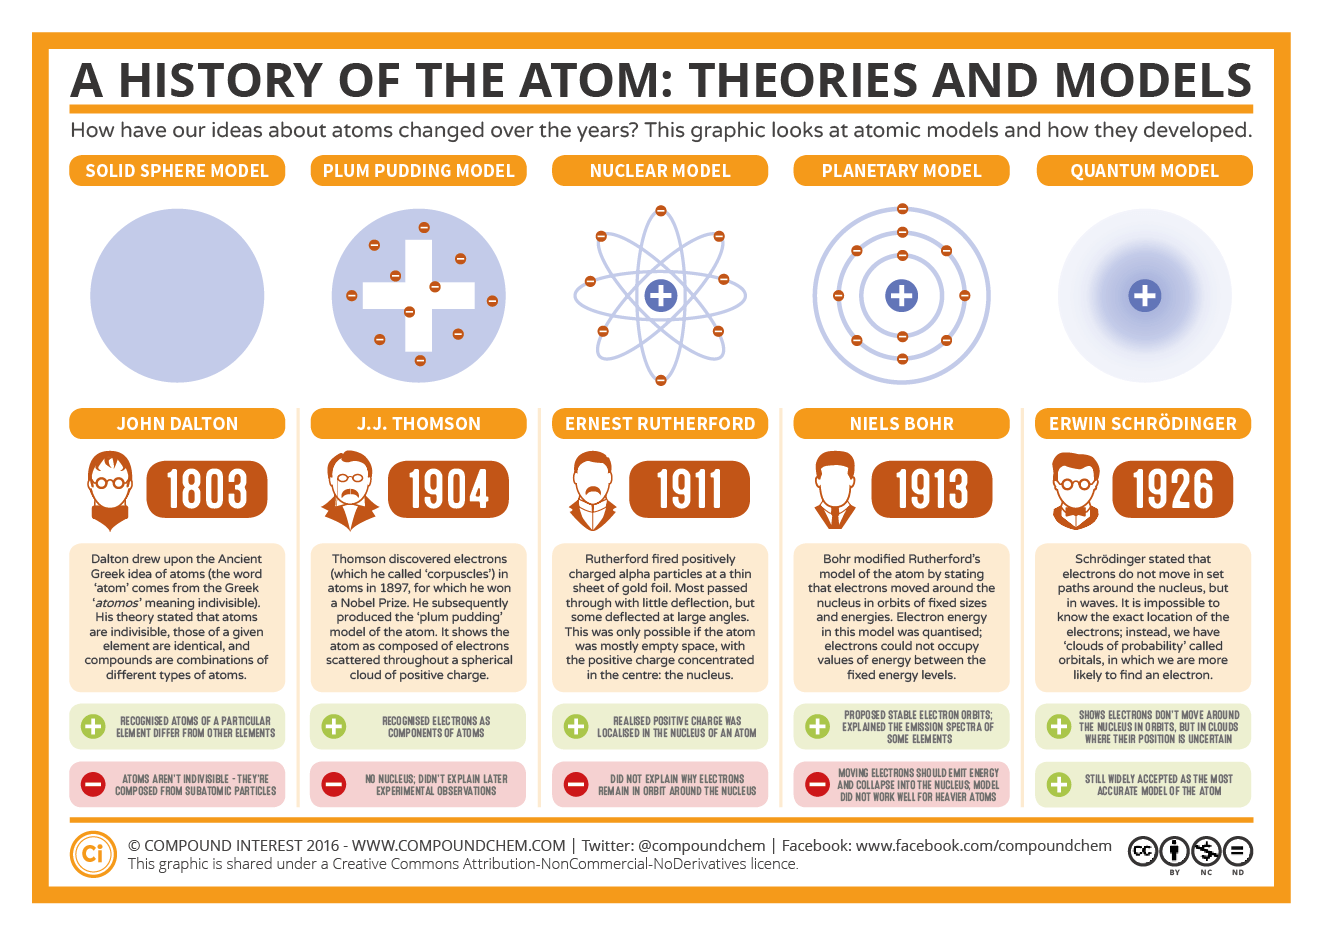 atomic models Contains directions for constructing and using atomic models for instructional   from common materials to better visualize and conceptualize atomic structure.